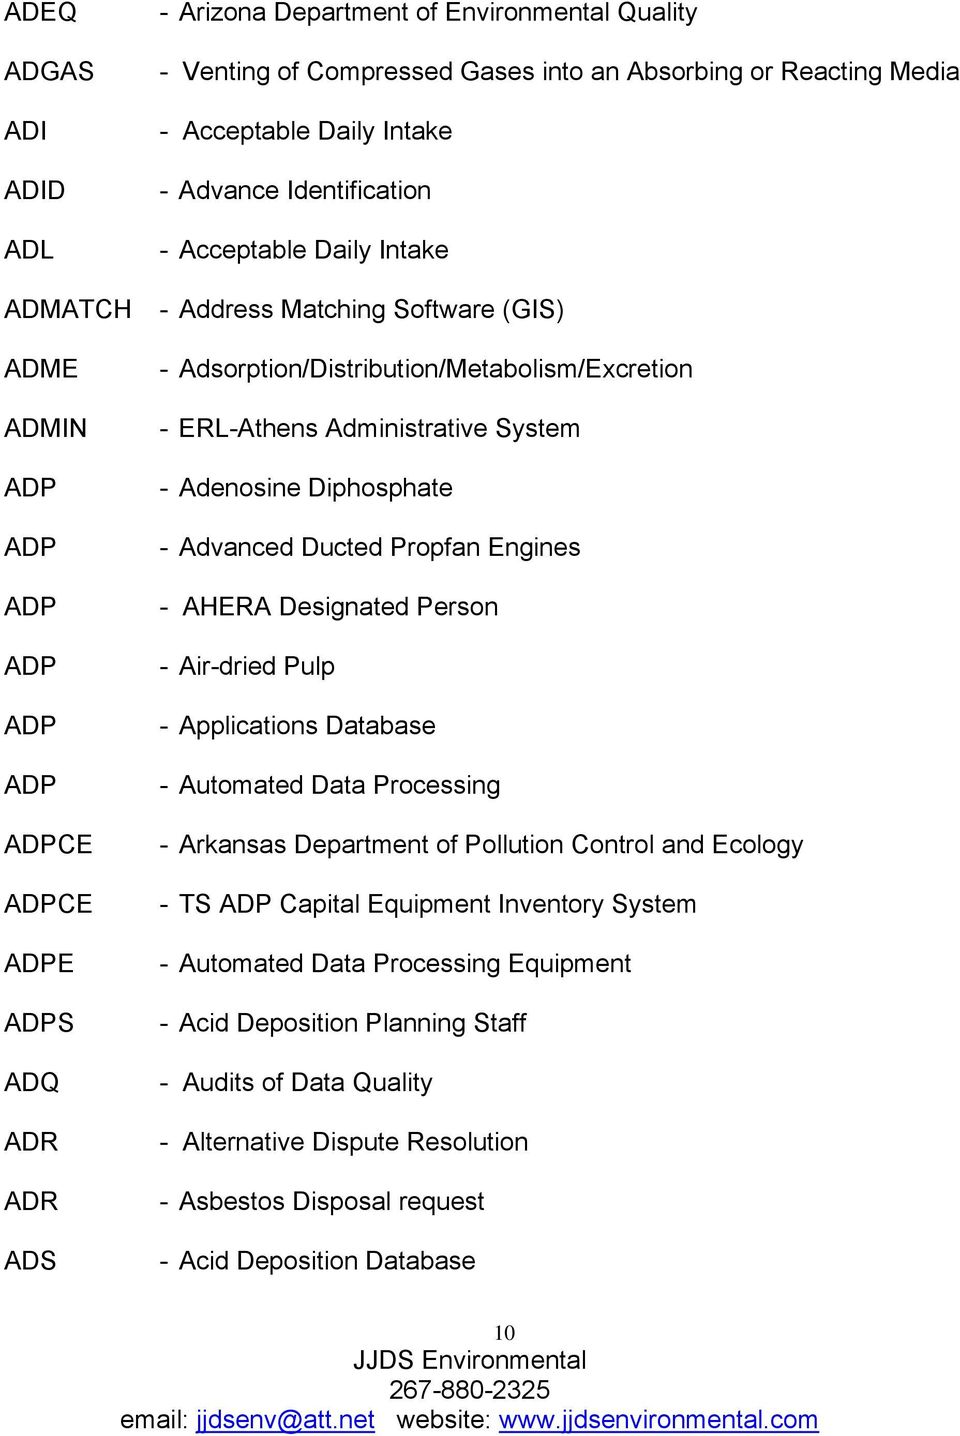 Administrative System - Adenosine Diphosphate - Advanced Ducted Propfan Engines - AHERA Designated Person - Air-dried Pulp - Applications Database - Automated Data Processing - Arkansas Department of